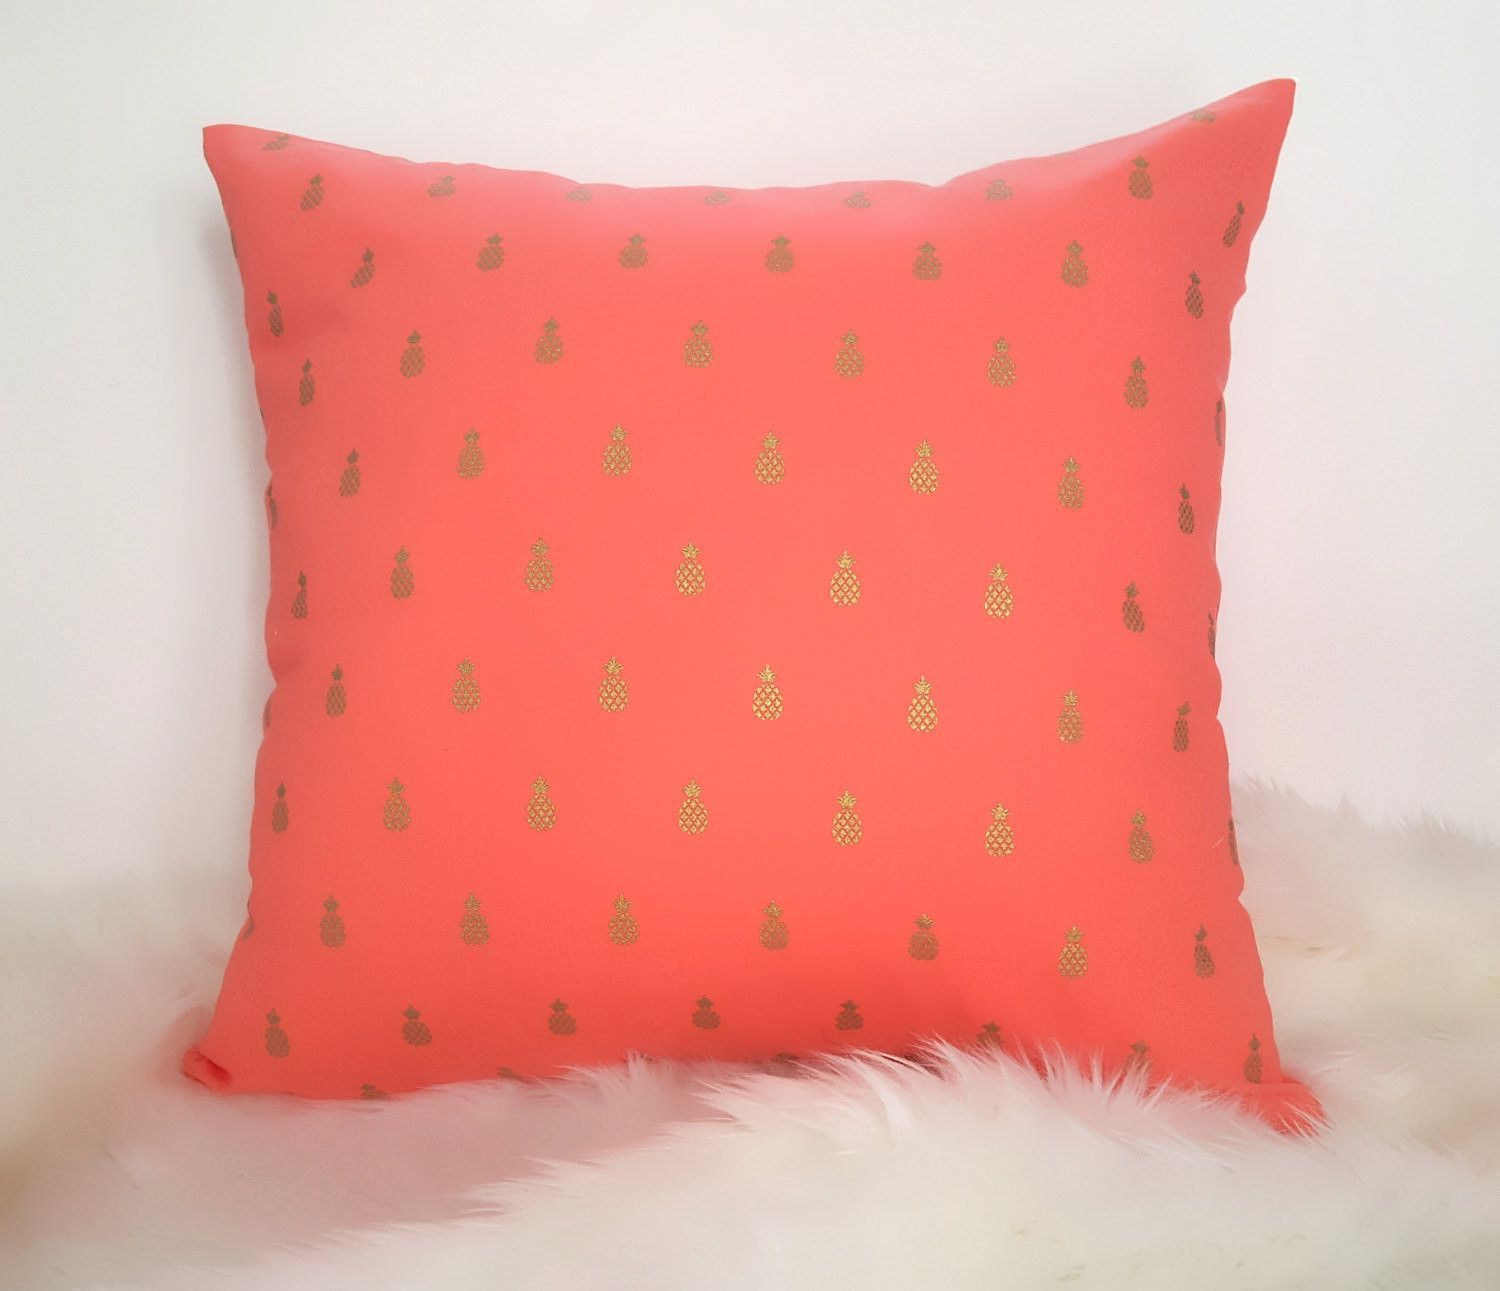 cheap pillow adler decorative can buy did know this jonathan pillows omg pin a i love you